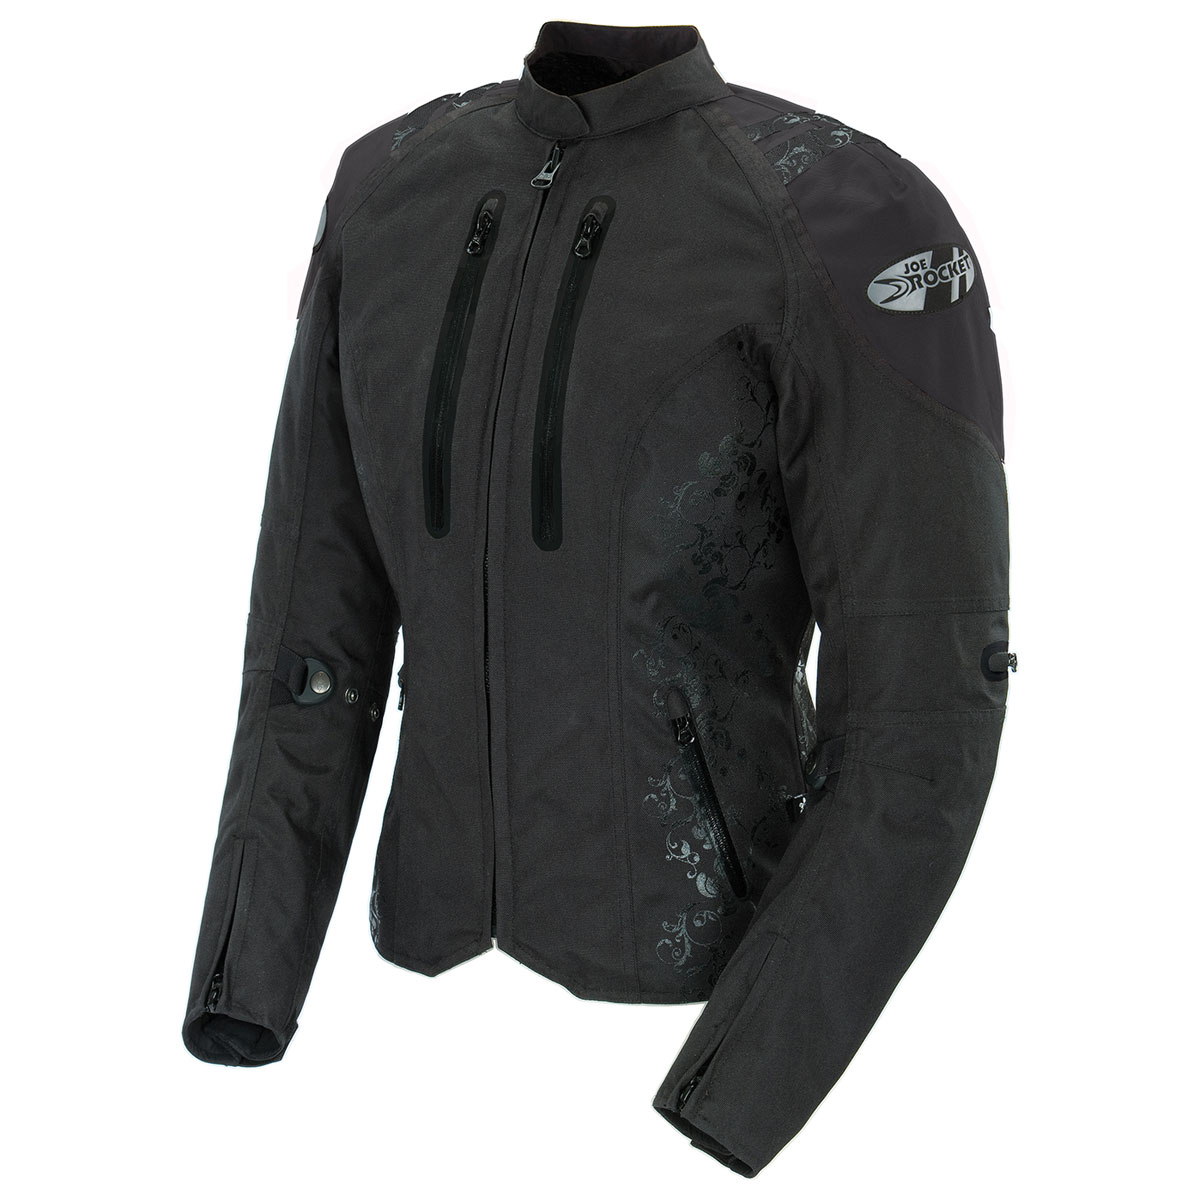 Joe Rocket Women's Atomic 4.0 Waterproof Black Jacket